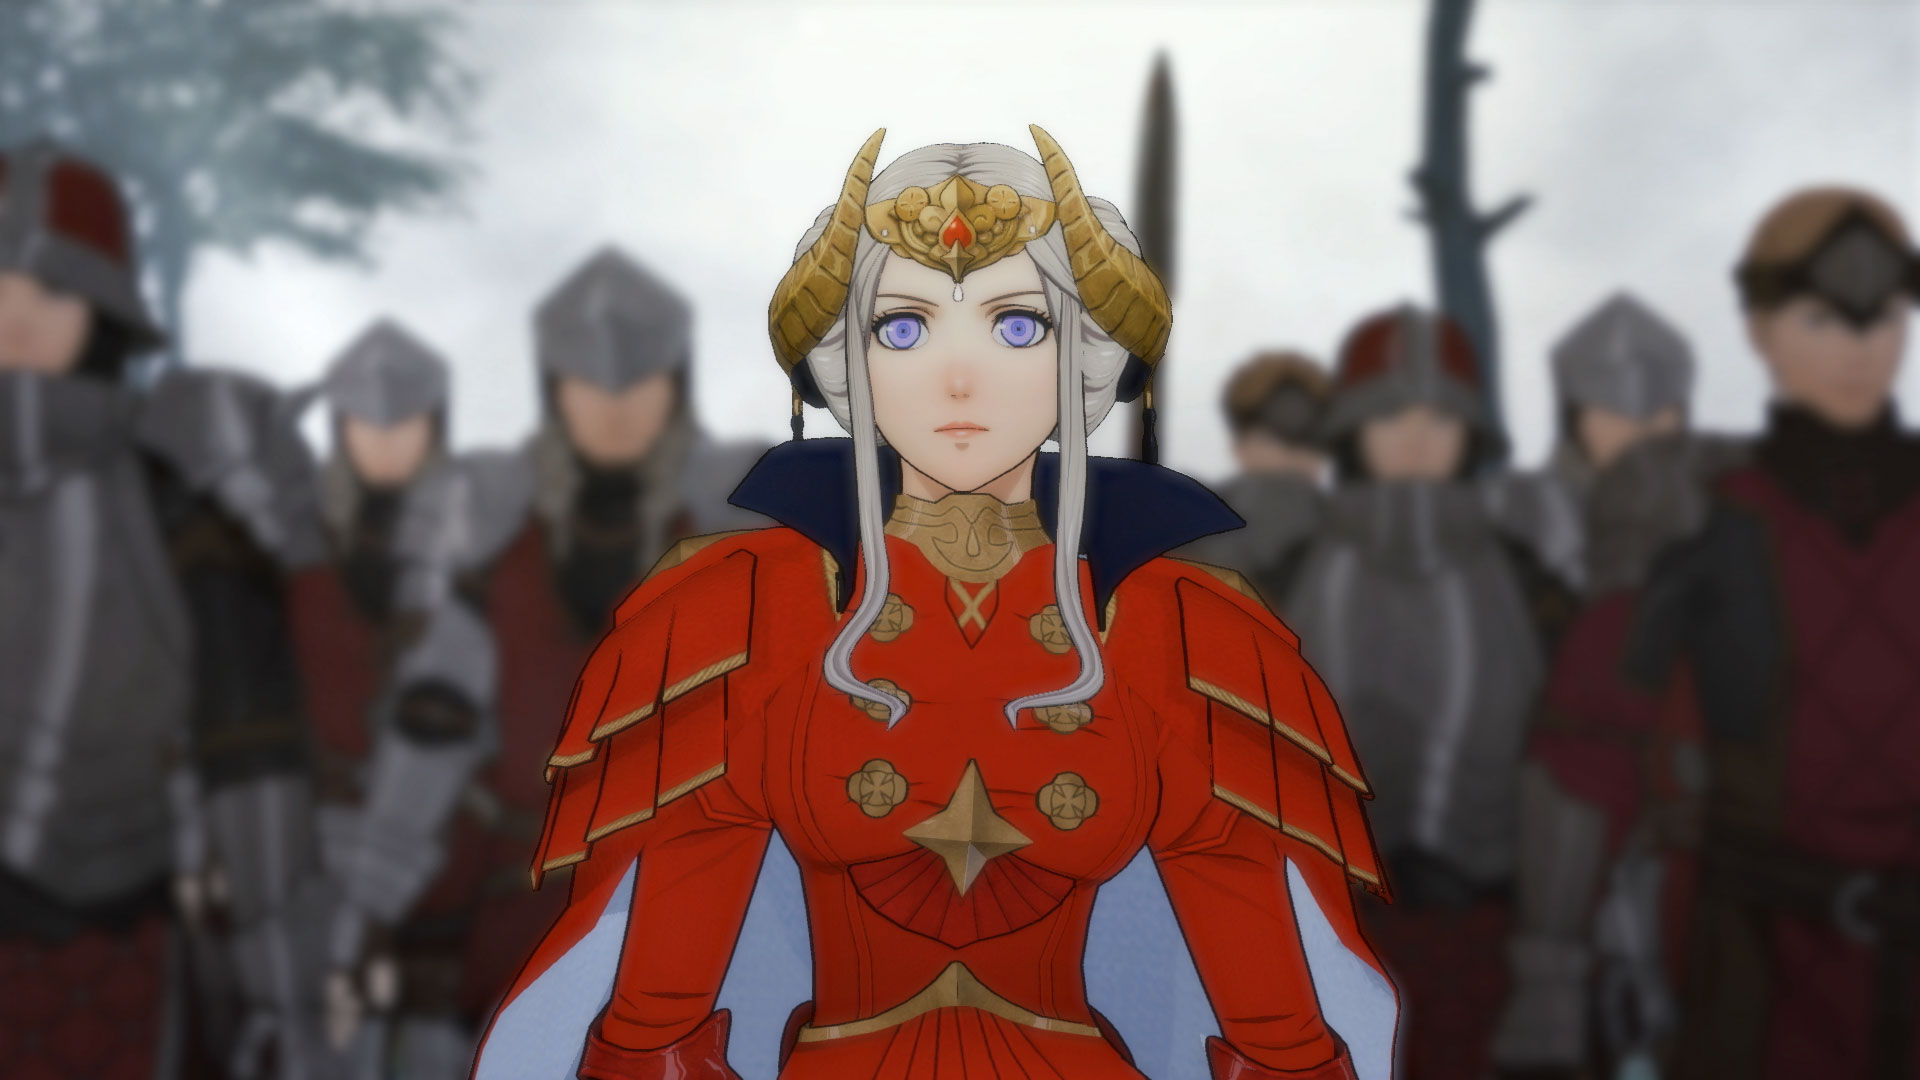 Fire Emblem, Fire Emblem: Three Houses, Fire Emblem: Three Houses Review, Intelligent Systems, Koei Tecmo Games, Nintendo, Nintendo Switch, Nintendo Switch Review, RPG, strategy, Switch Review, Tactics, turn-based, Video Game, Video Game Review